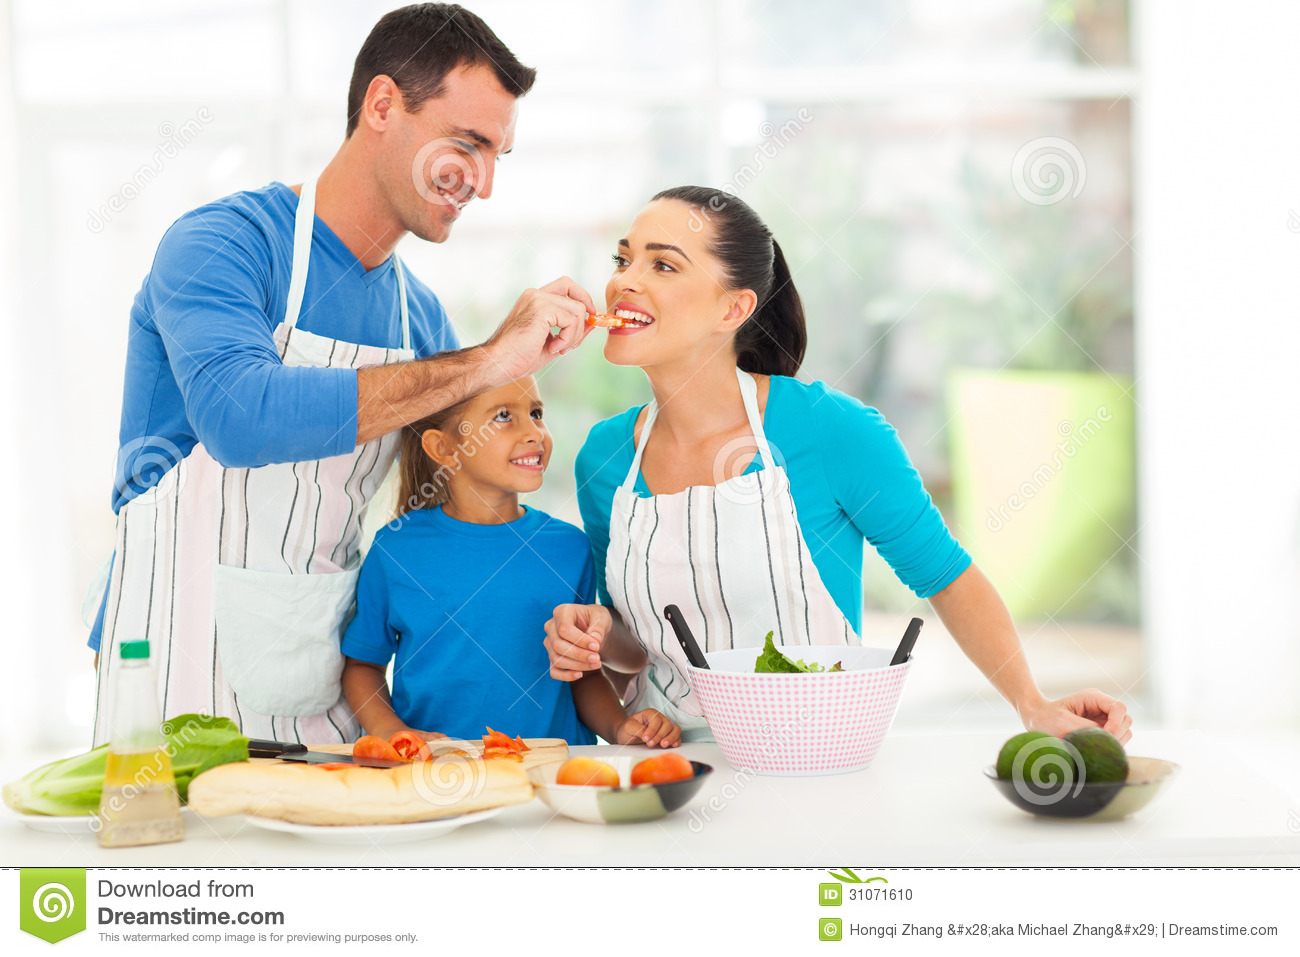 Husband Feeding Wife Stock Images - Download 1,113 Royalty Free Photos